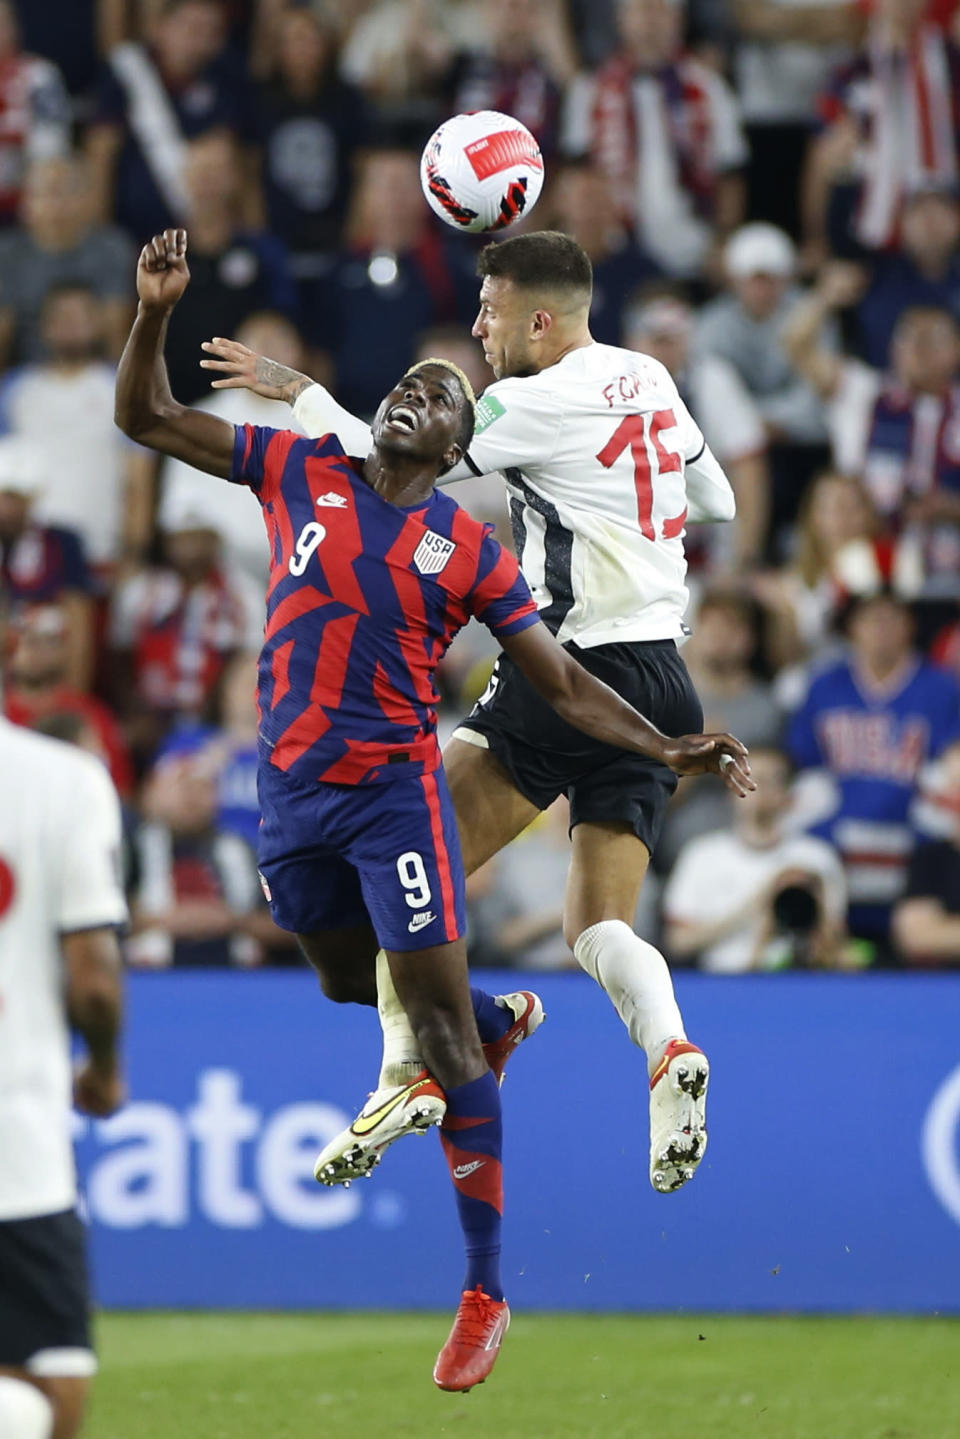 United States' Gyasi Zardes, left, and Costa Rica's Francisco Calvo jump for a head ball during the second half of a World Cup qualifying soccer match Wednesday, Oct. 13, 2021, in Columbus, Ohio. The United States won 2-1. (AP Photo/Jay LaPrete)